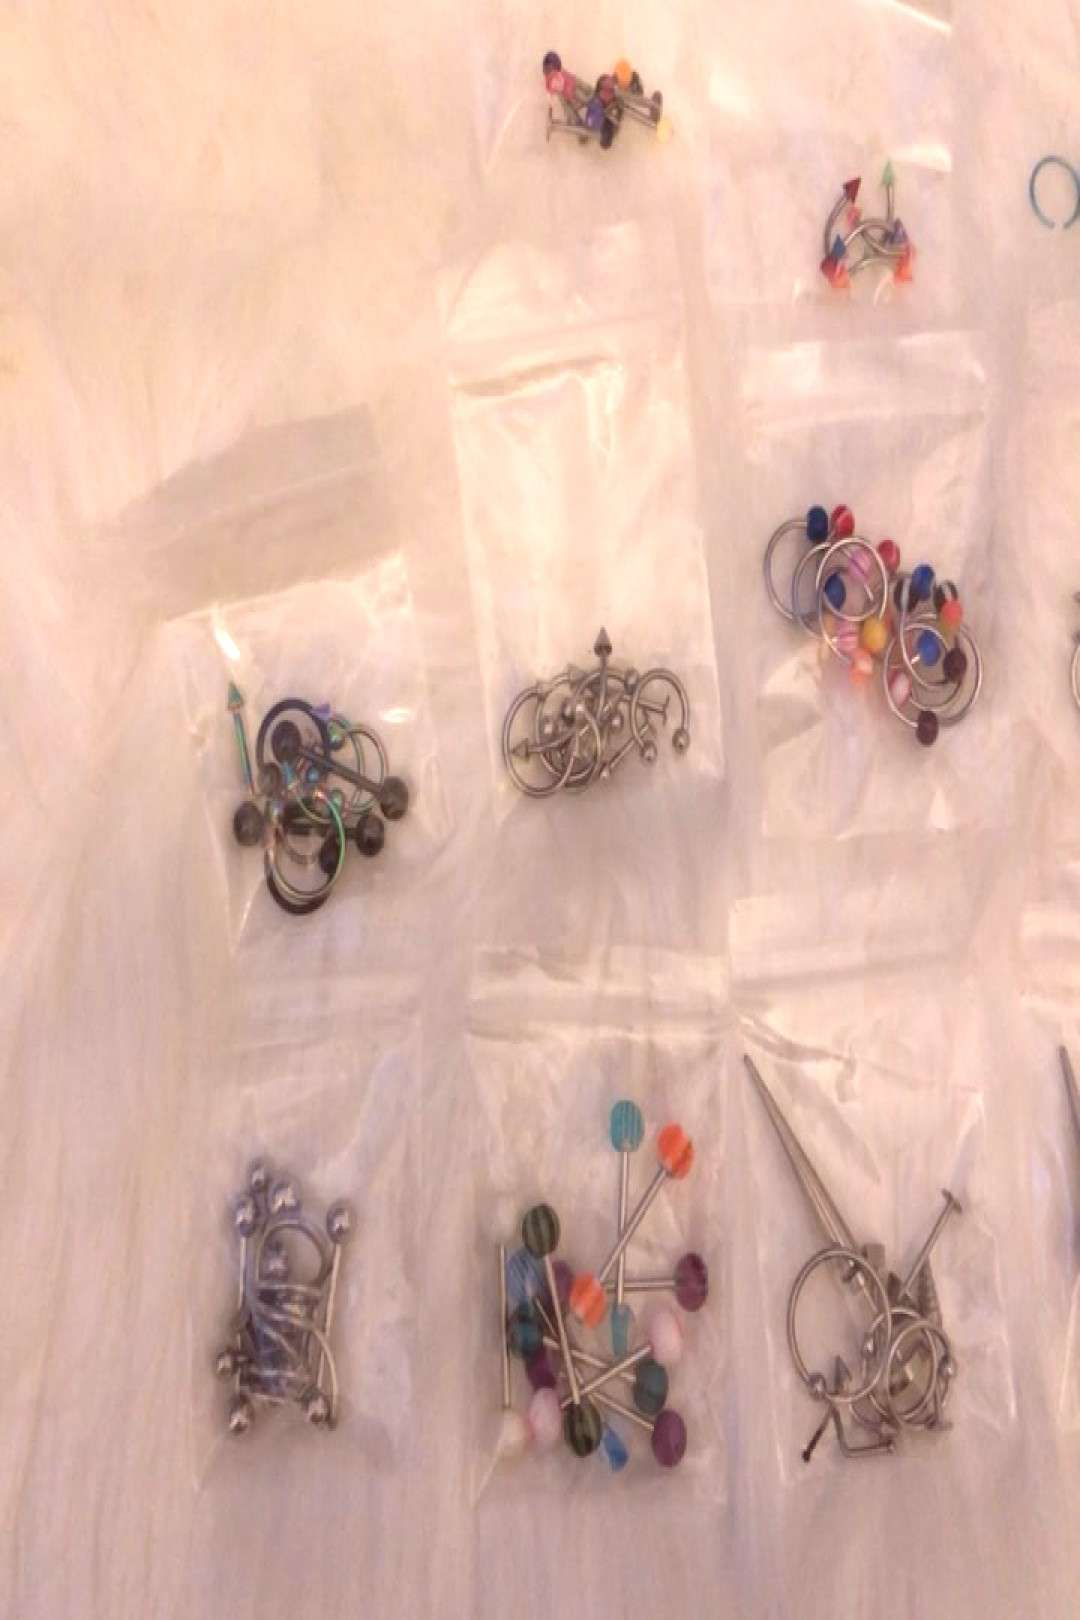 #tonguerings #provide #jewelry #charge #extra #body #with #stai #all #no #is #i I provide body jewelry with no extra charge!! All jewelry is staiYou can find Tongue rings and more on our website.I provide body jewelry with no extra c...